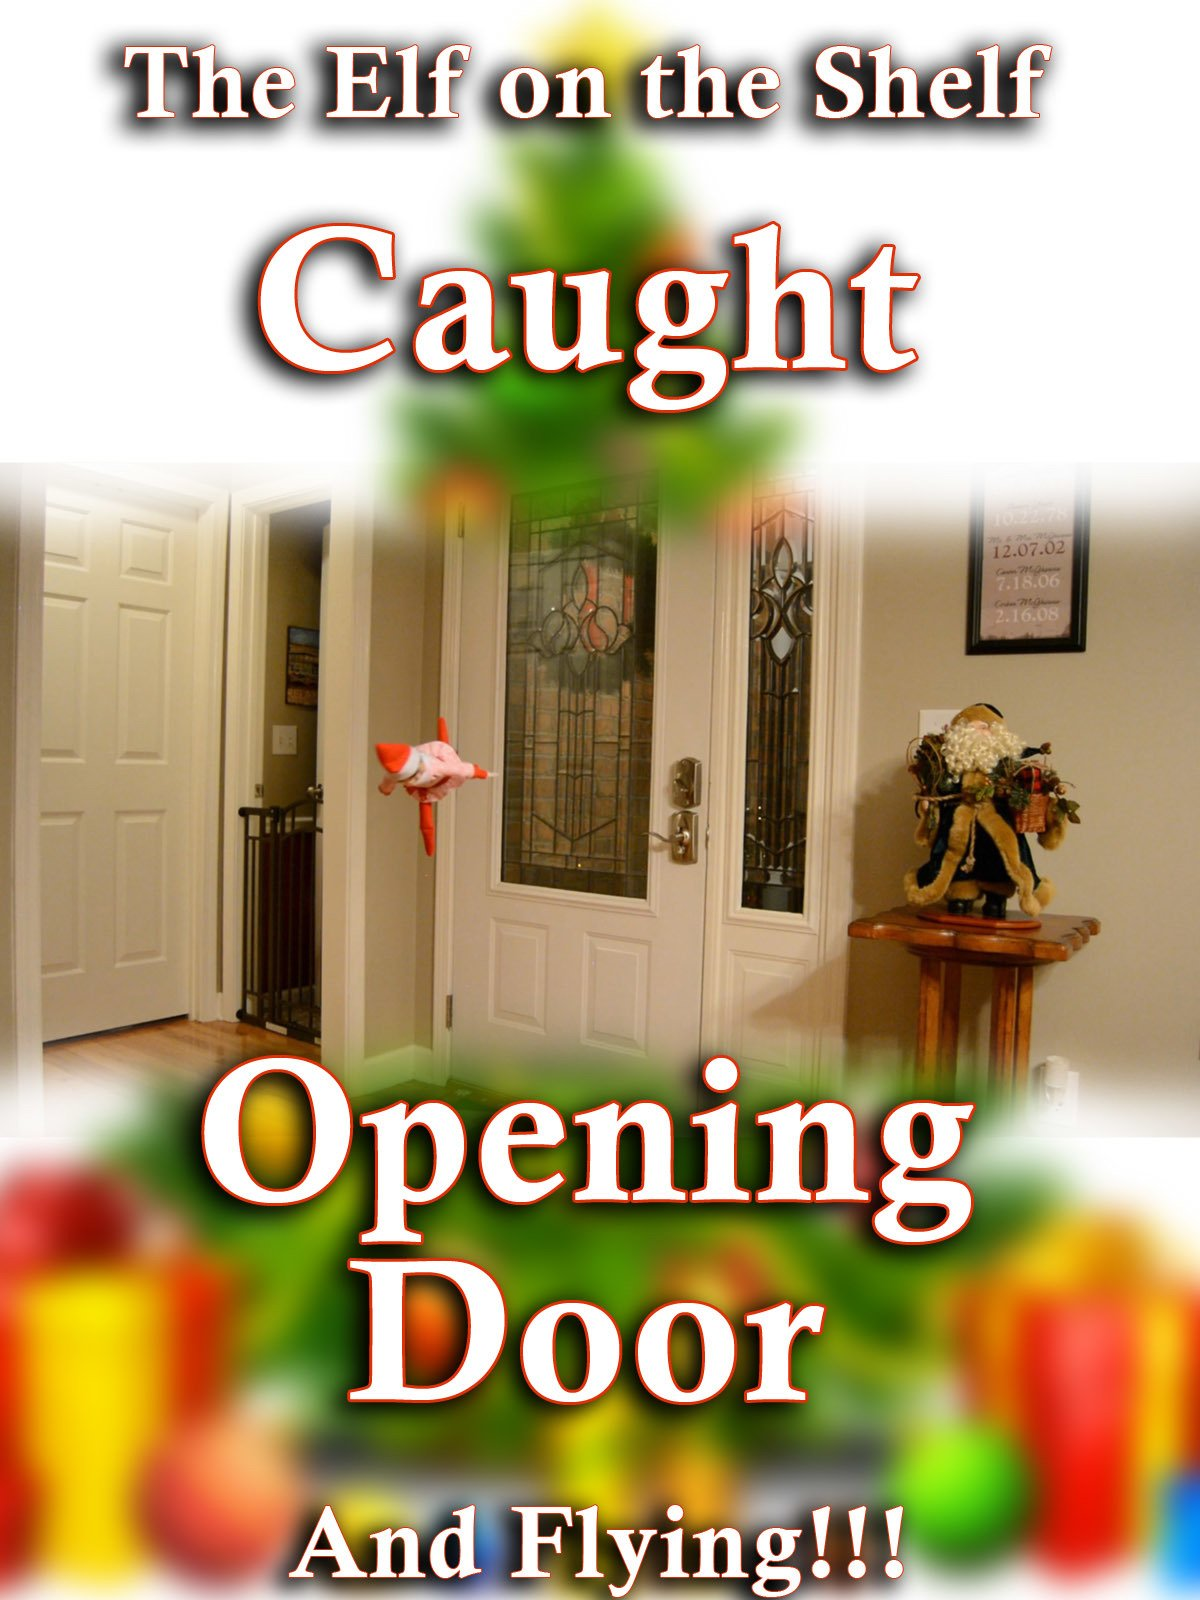 Elf on the Shelf Caught Opening Door and Flying